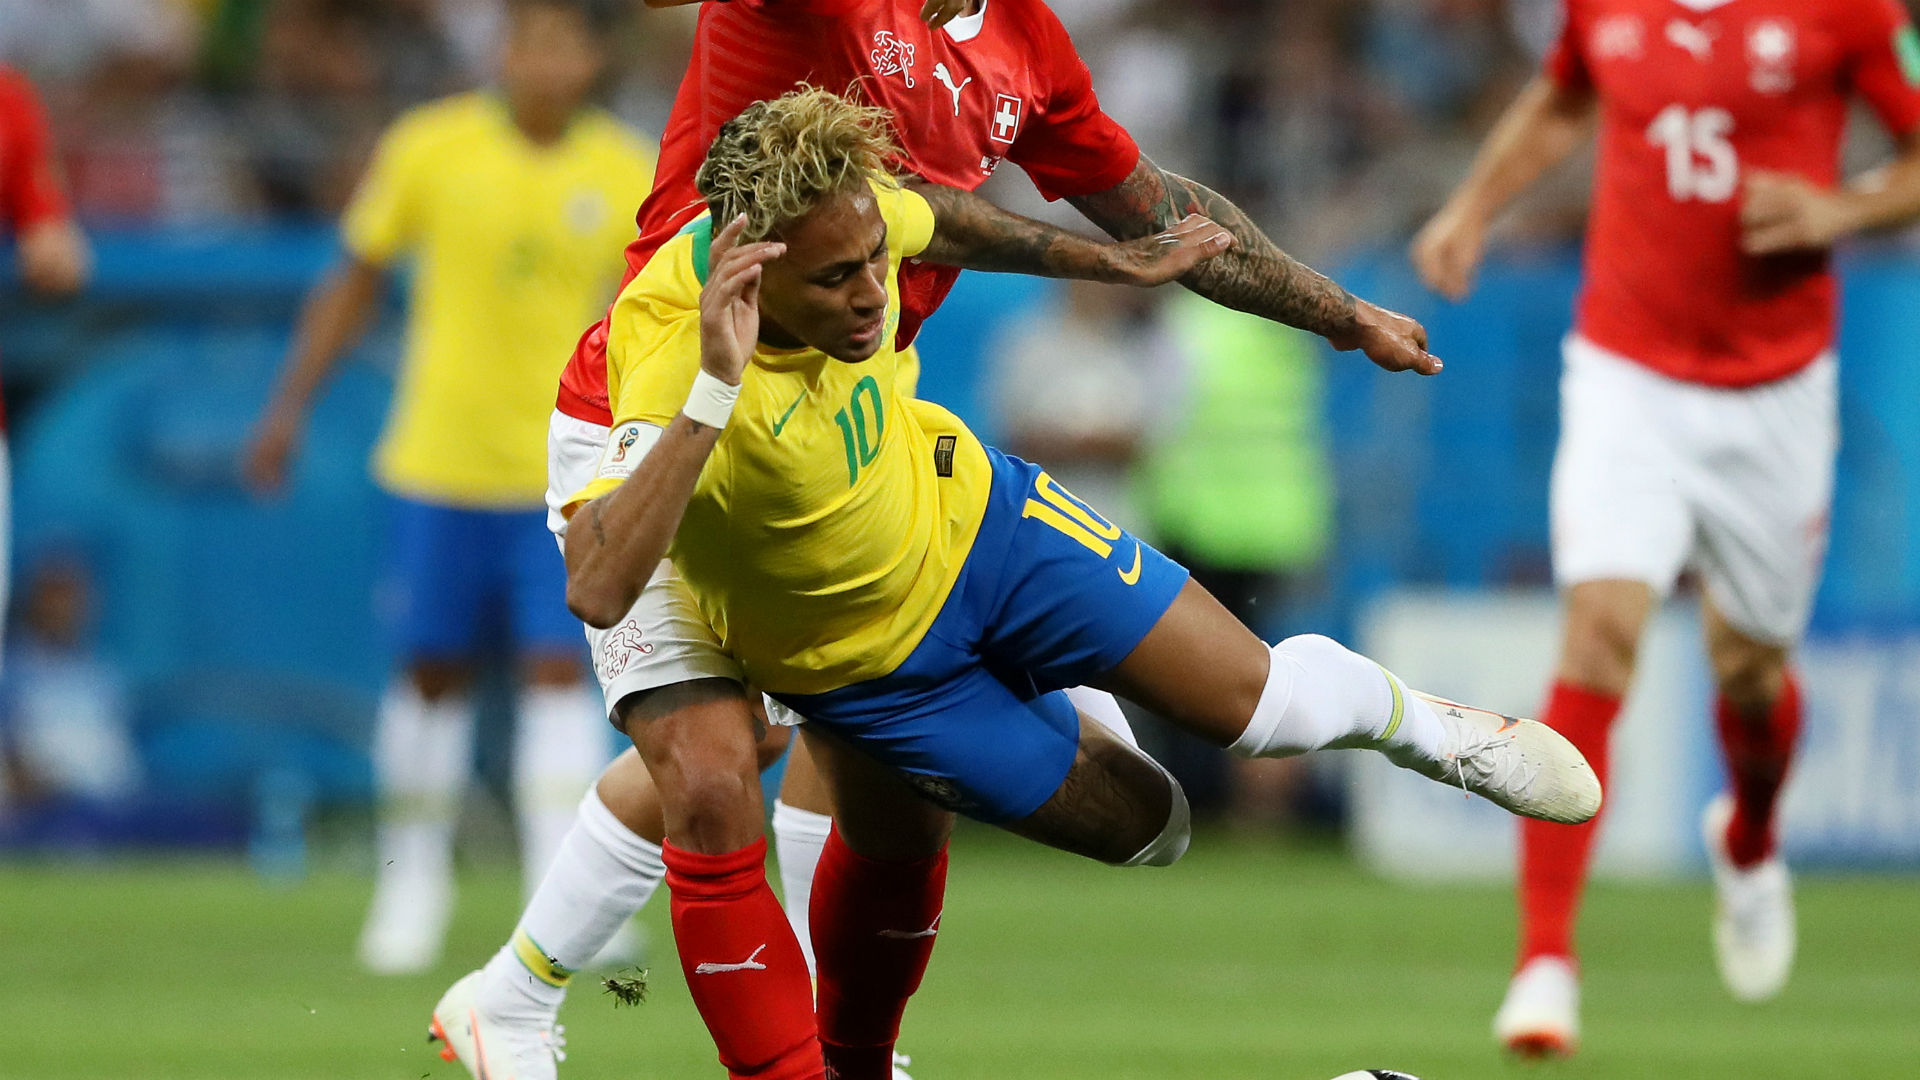 Brazil beat Costa Rica 2-0 to secure first win